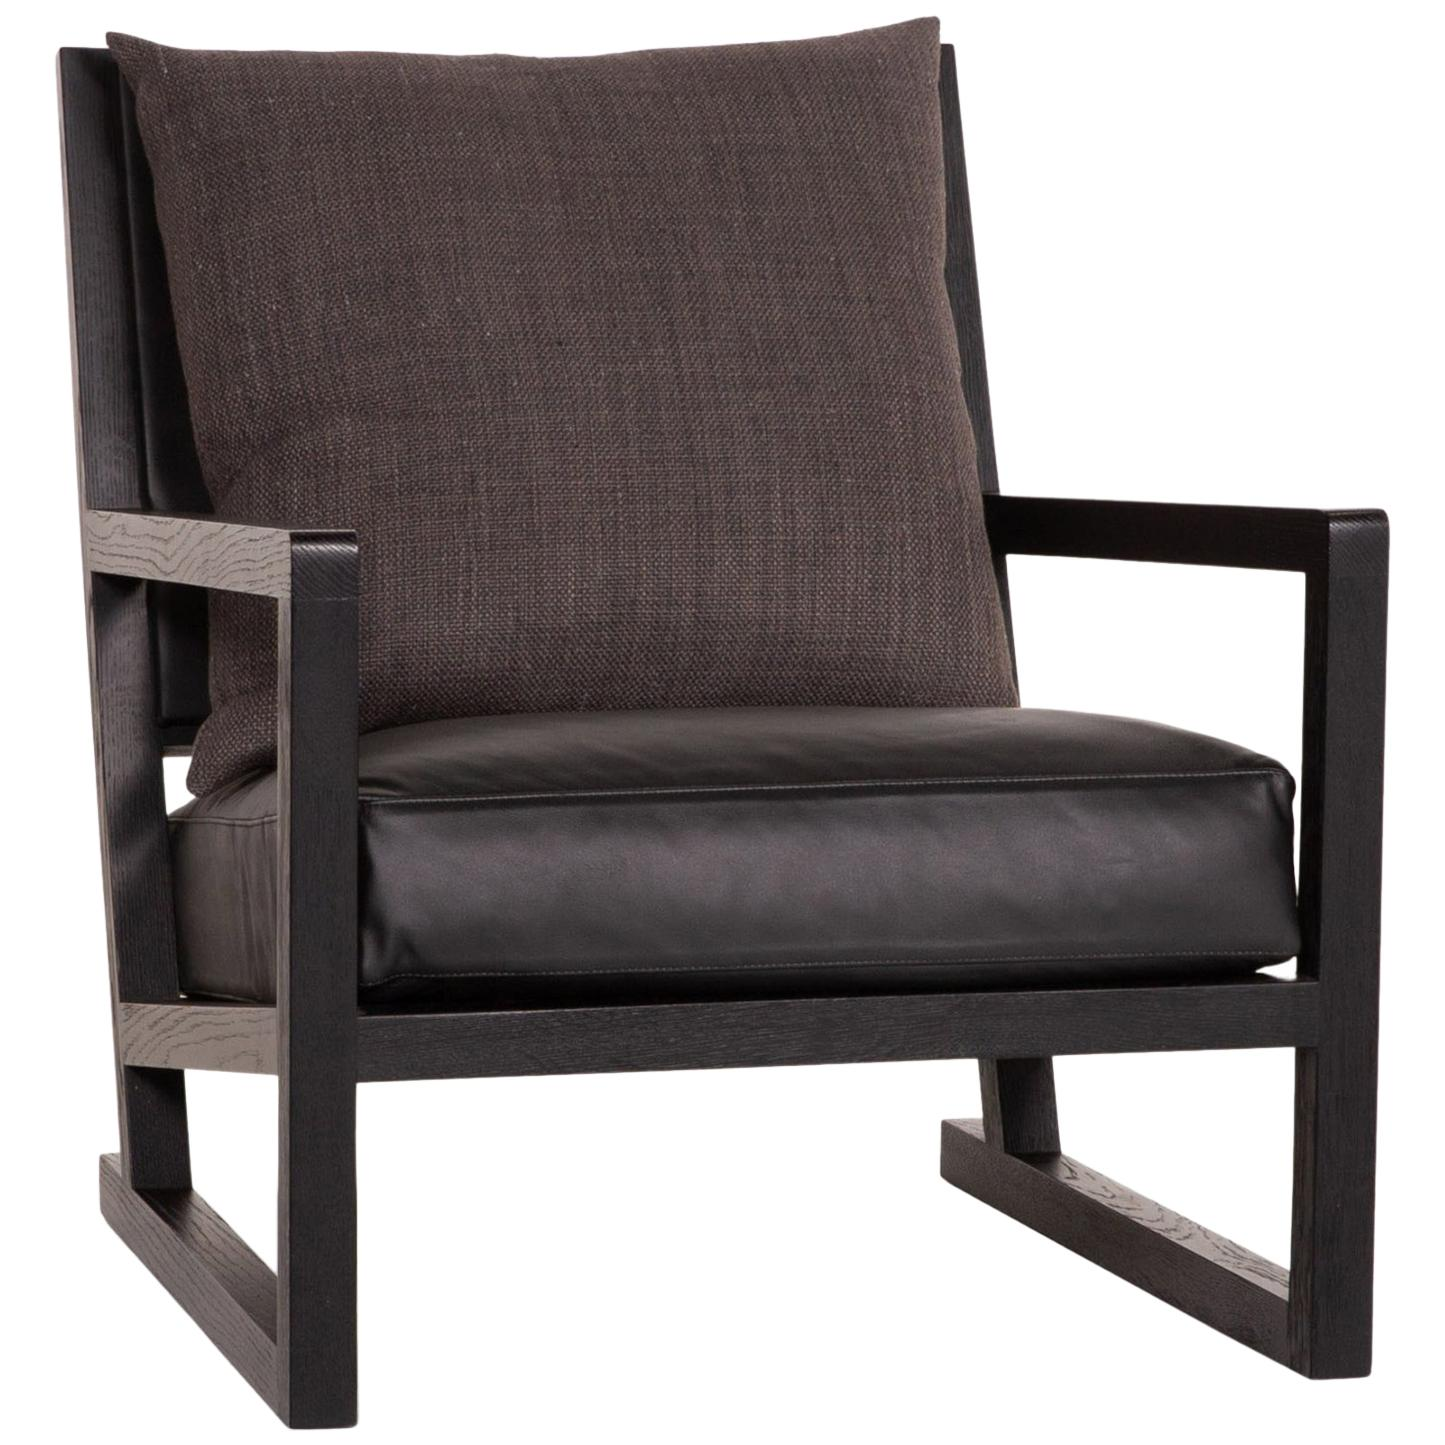 B&B Italia Simplice Leather Fabric Armchair Black